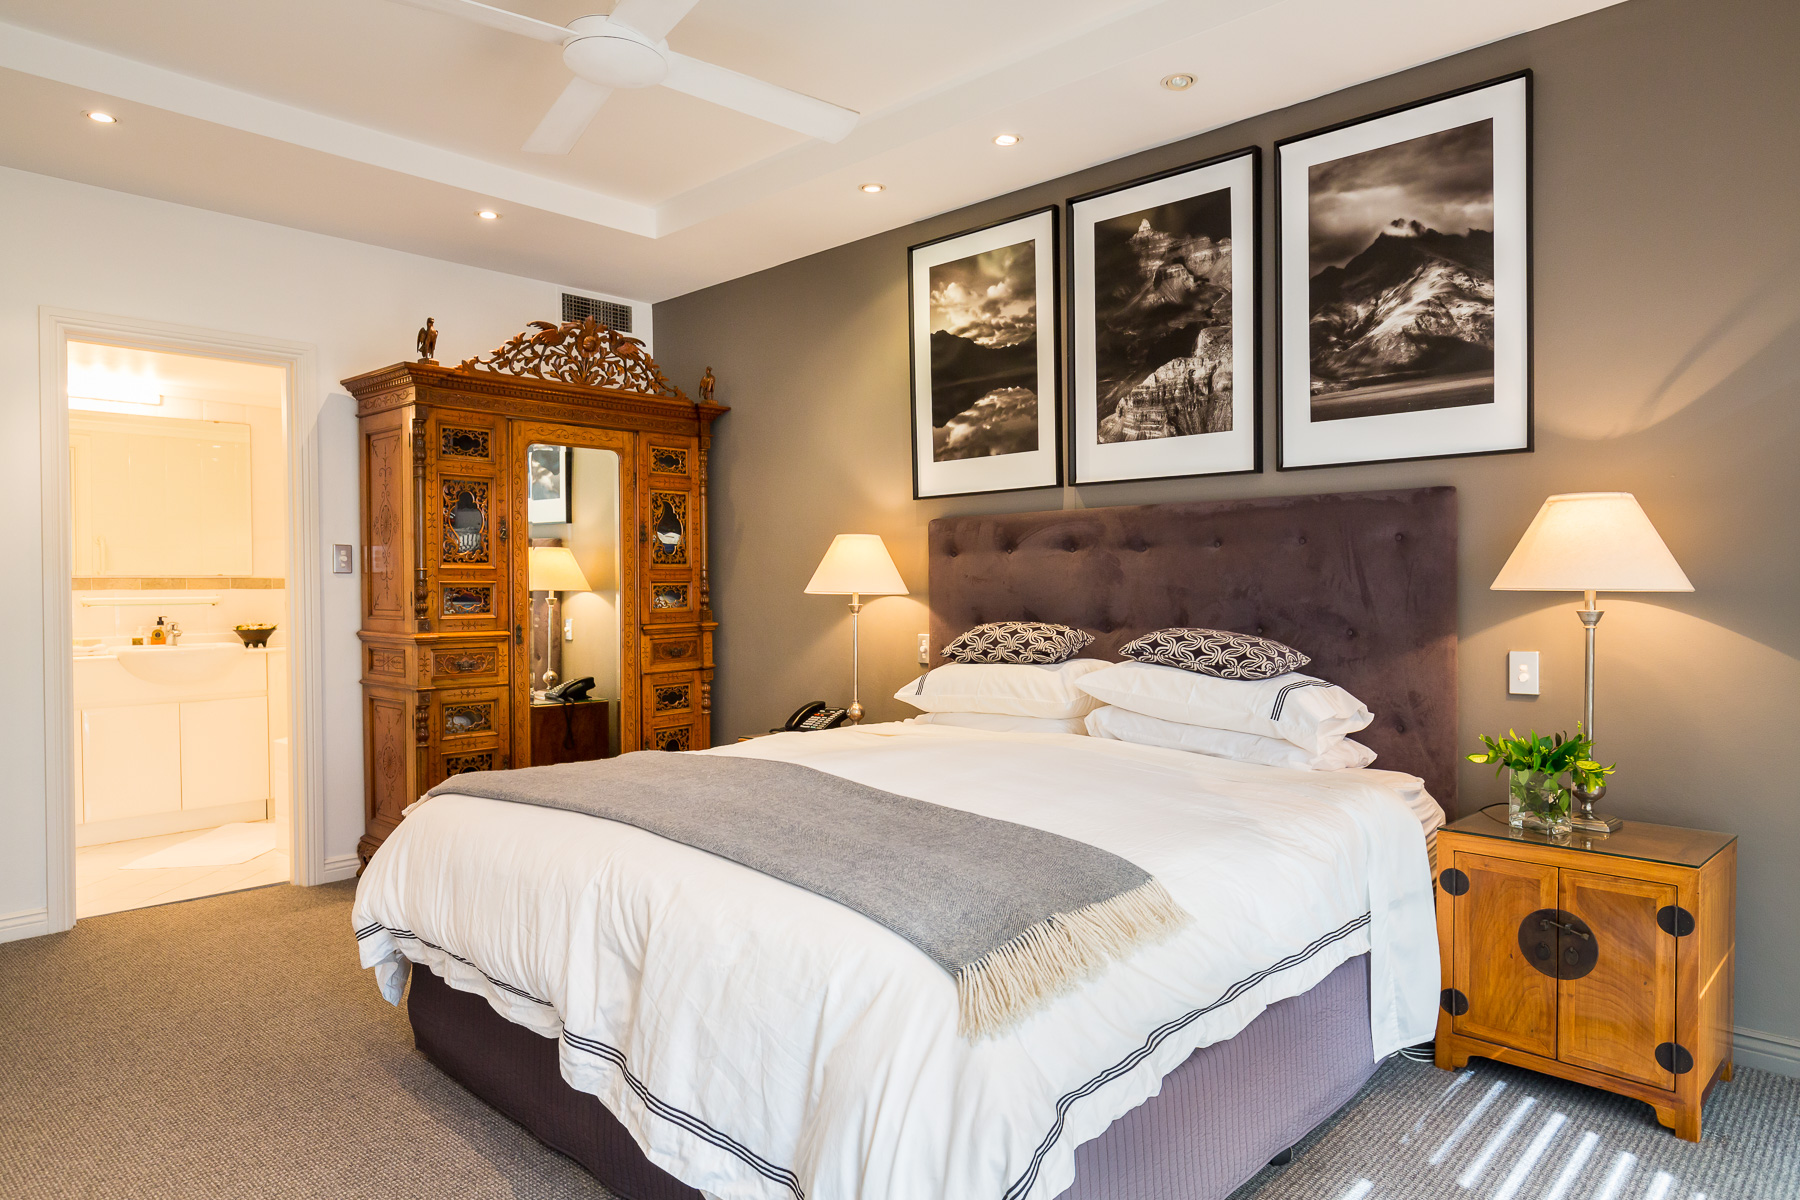 Master bedroom and ensuite.